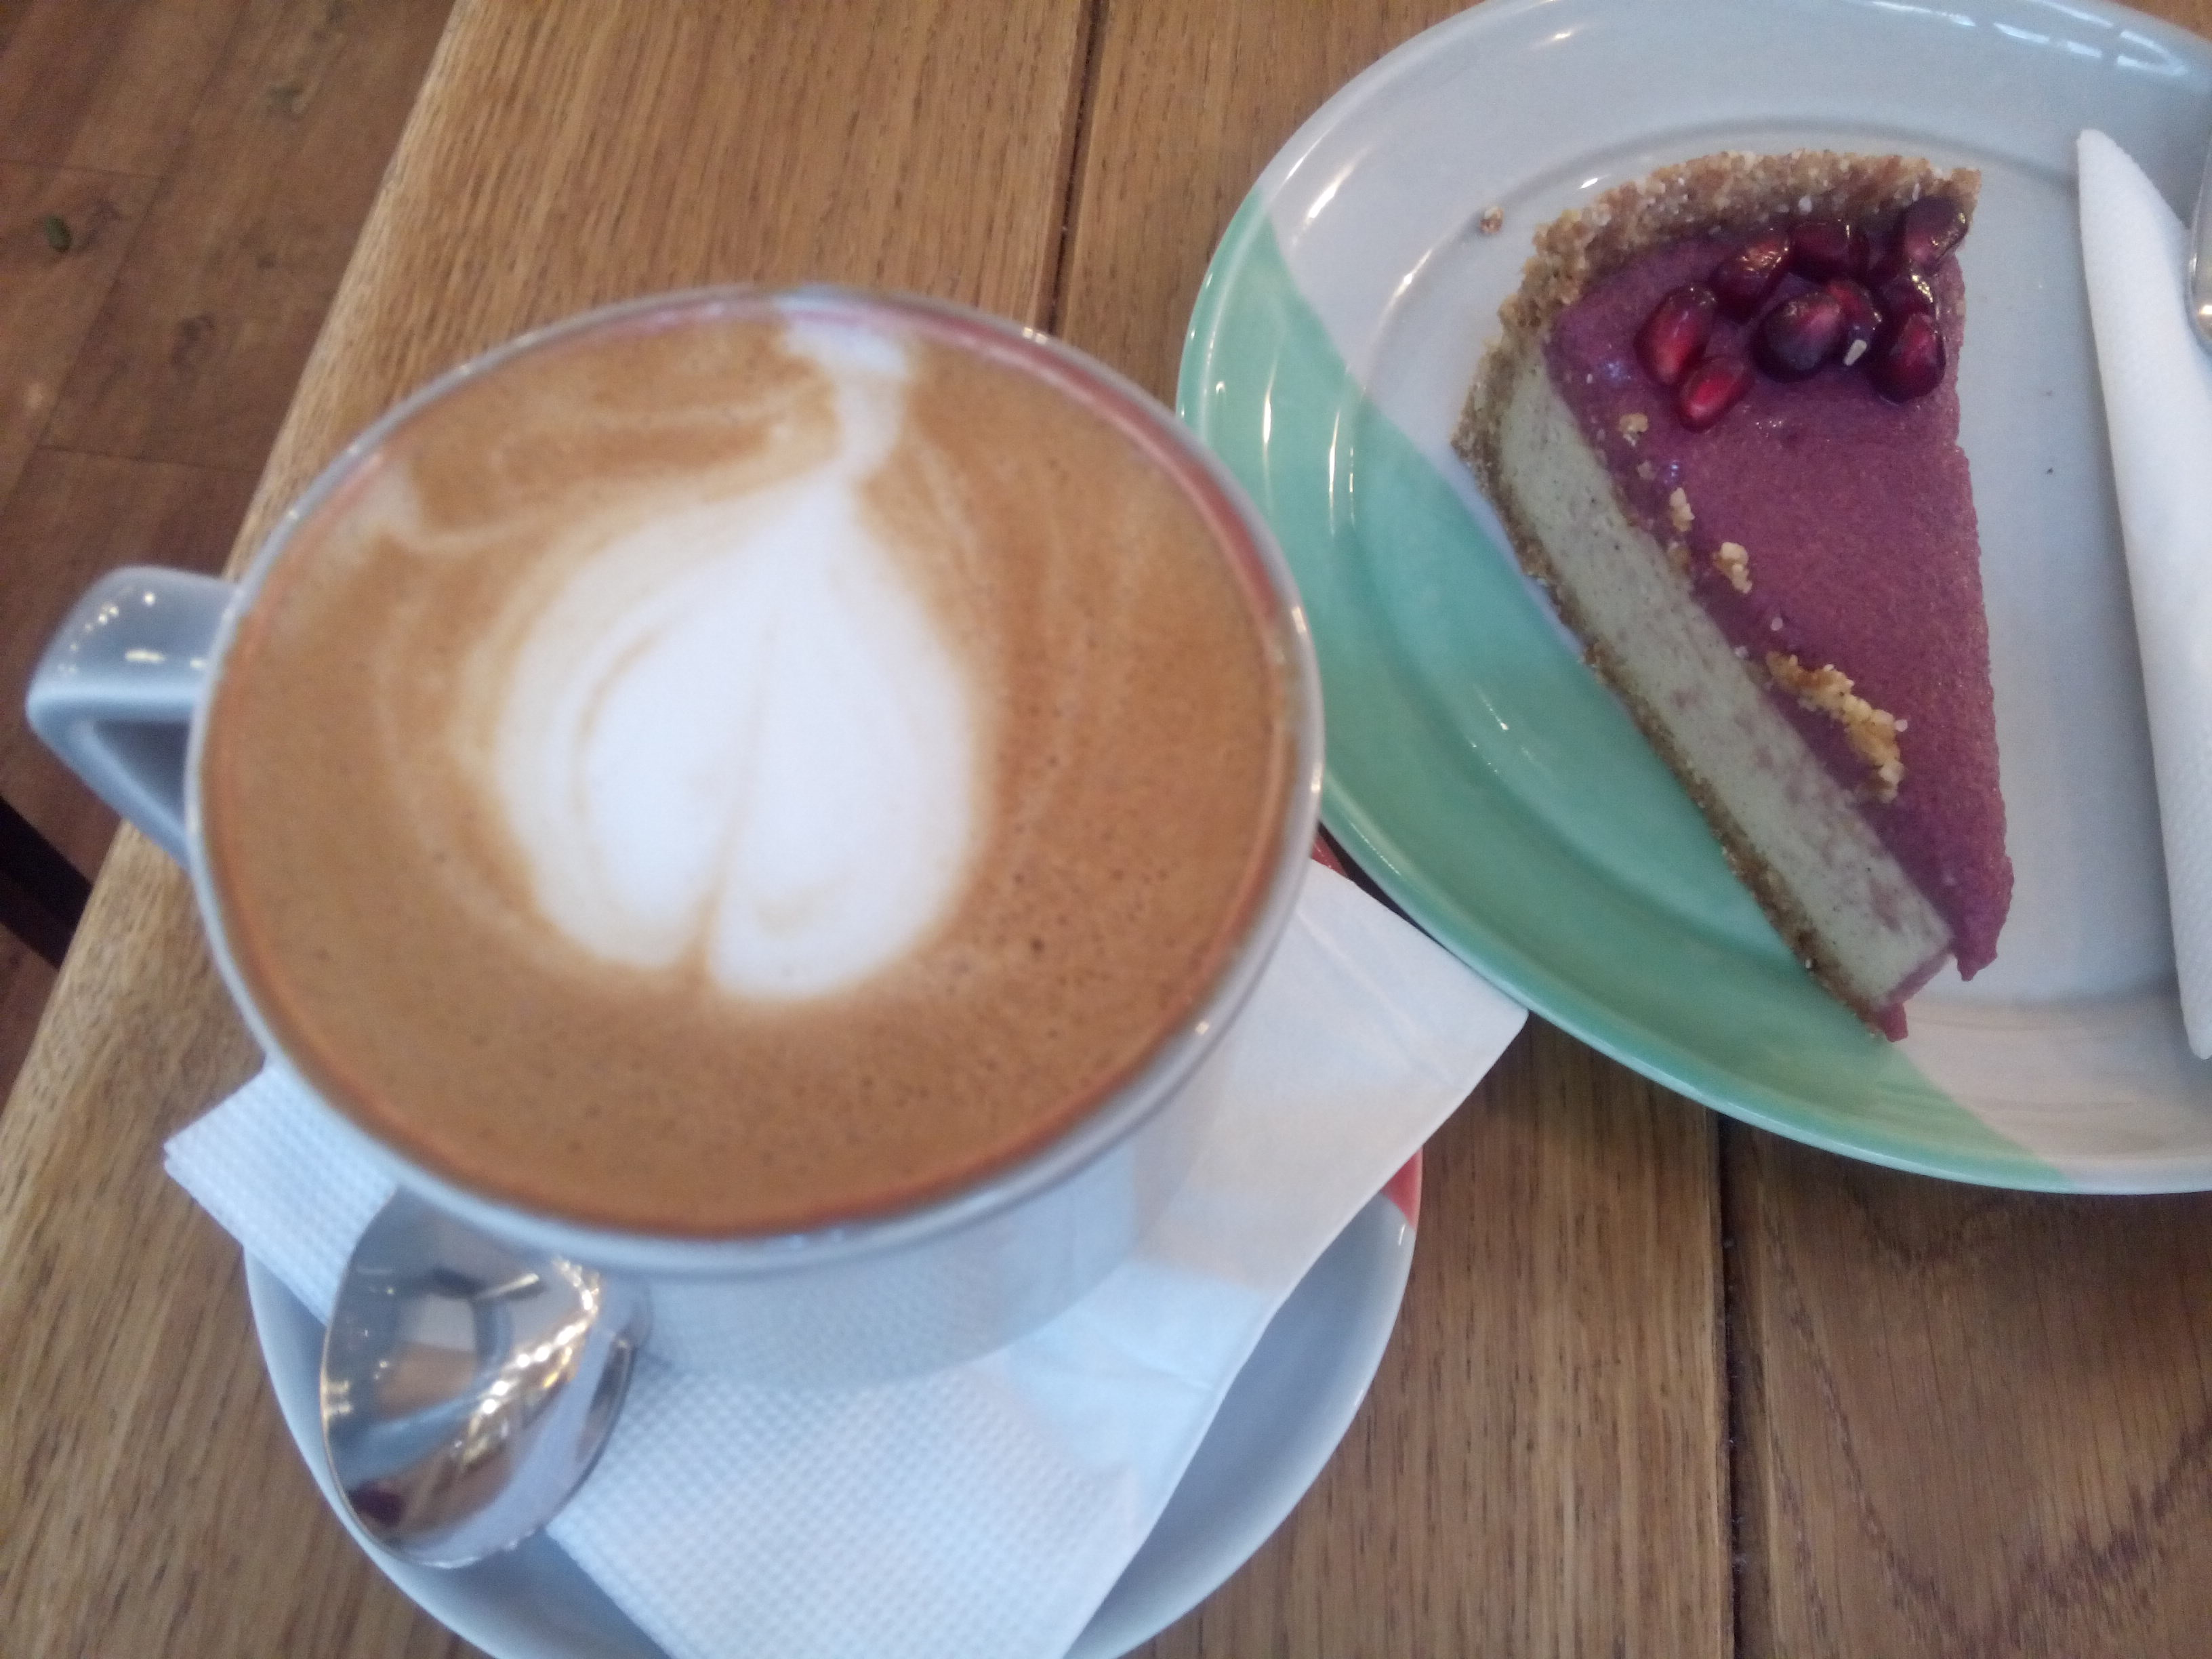 A big foamy cappuccino and a slice of purple and white cheesecake with pomegranate seeds on top